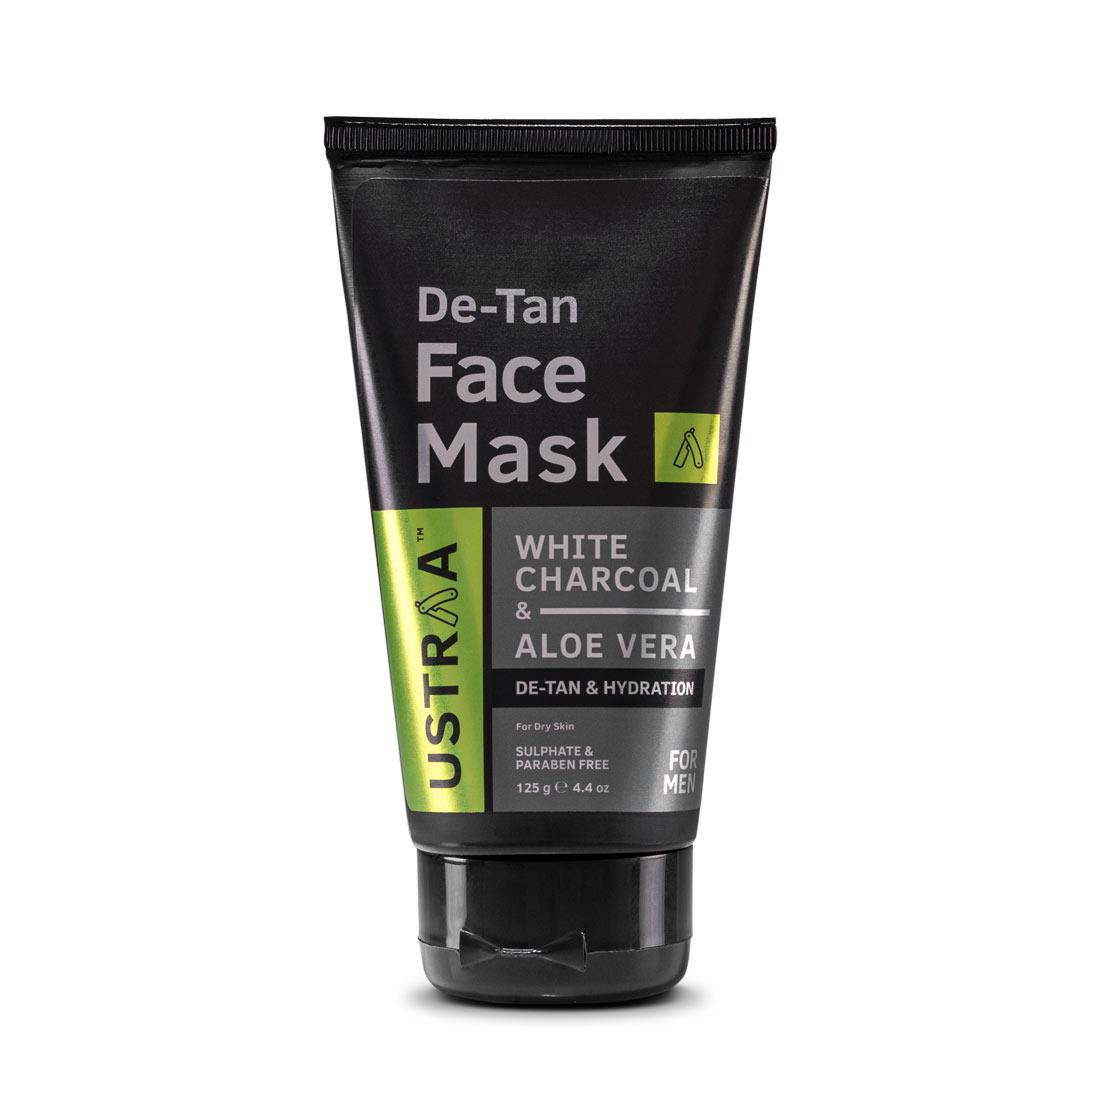 Ustraa De Tan Face Mask for Men with Dry Skin  125 g - For Tan Removal and Even Skin Tone with Kaolin Clay, White Charcoal, Aloe Vera and Olive Oil